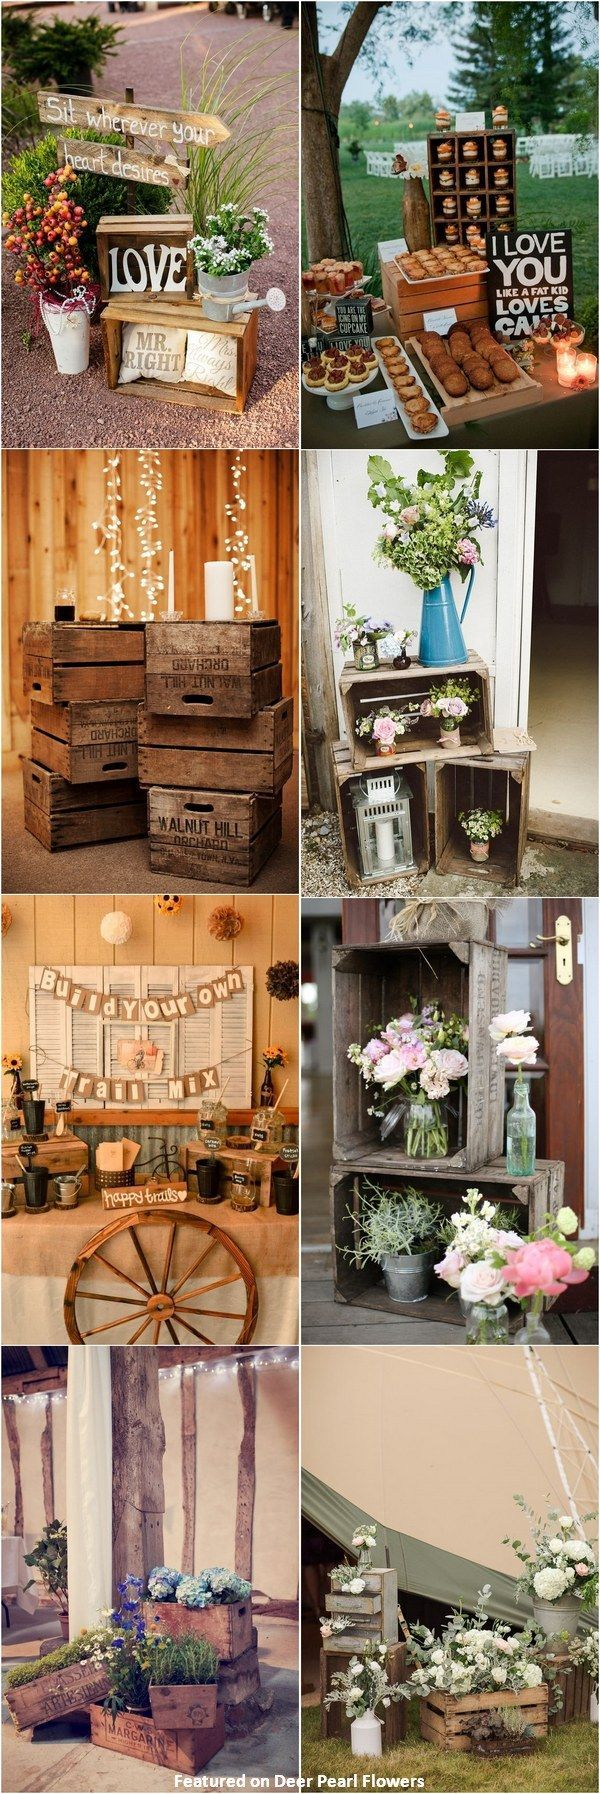 best 25 wooden crates ideas on pinterest wooden shoe